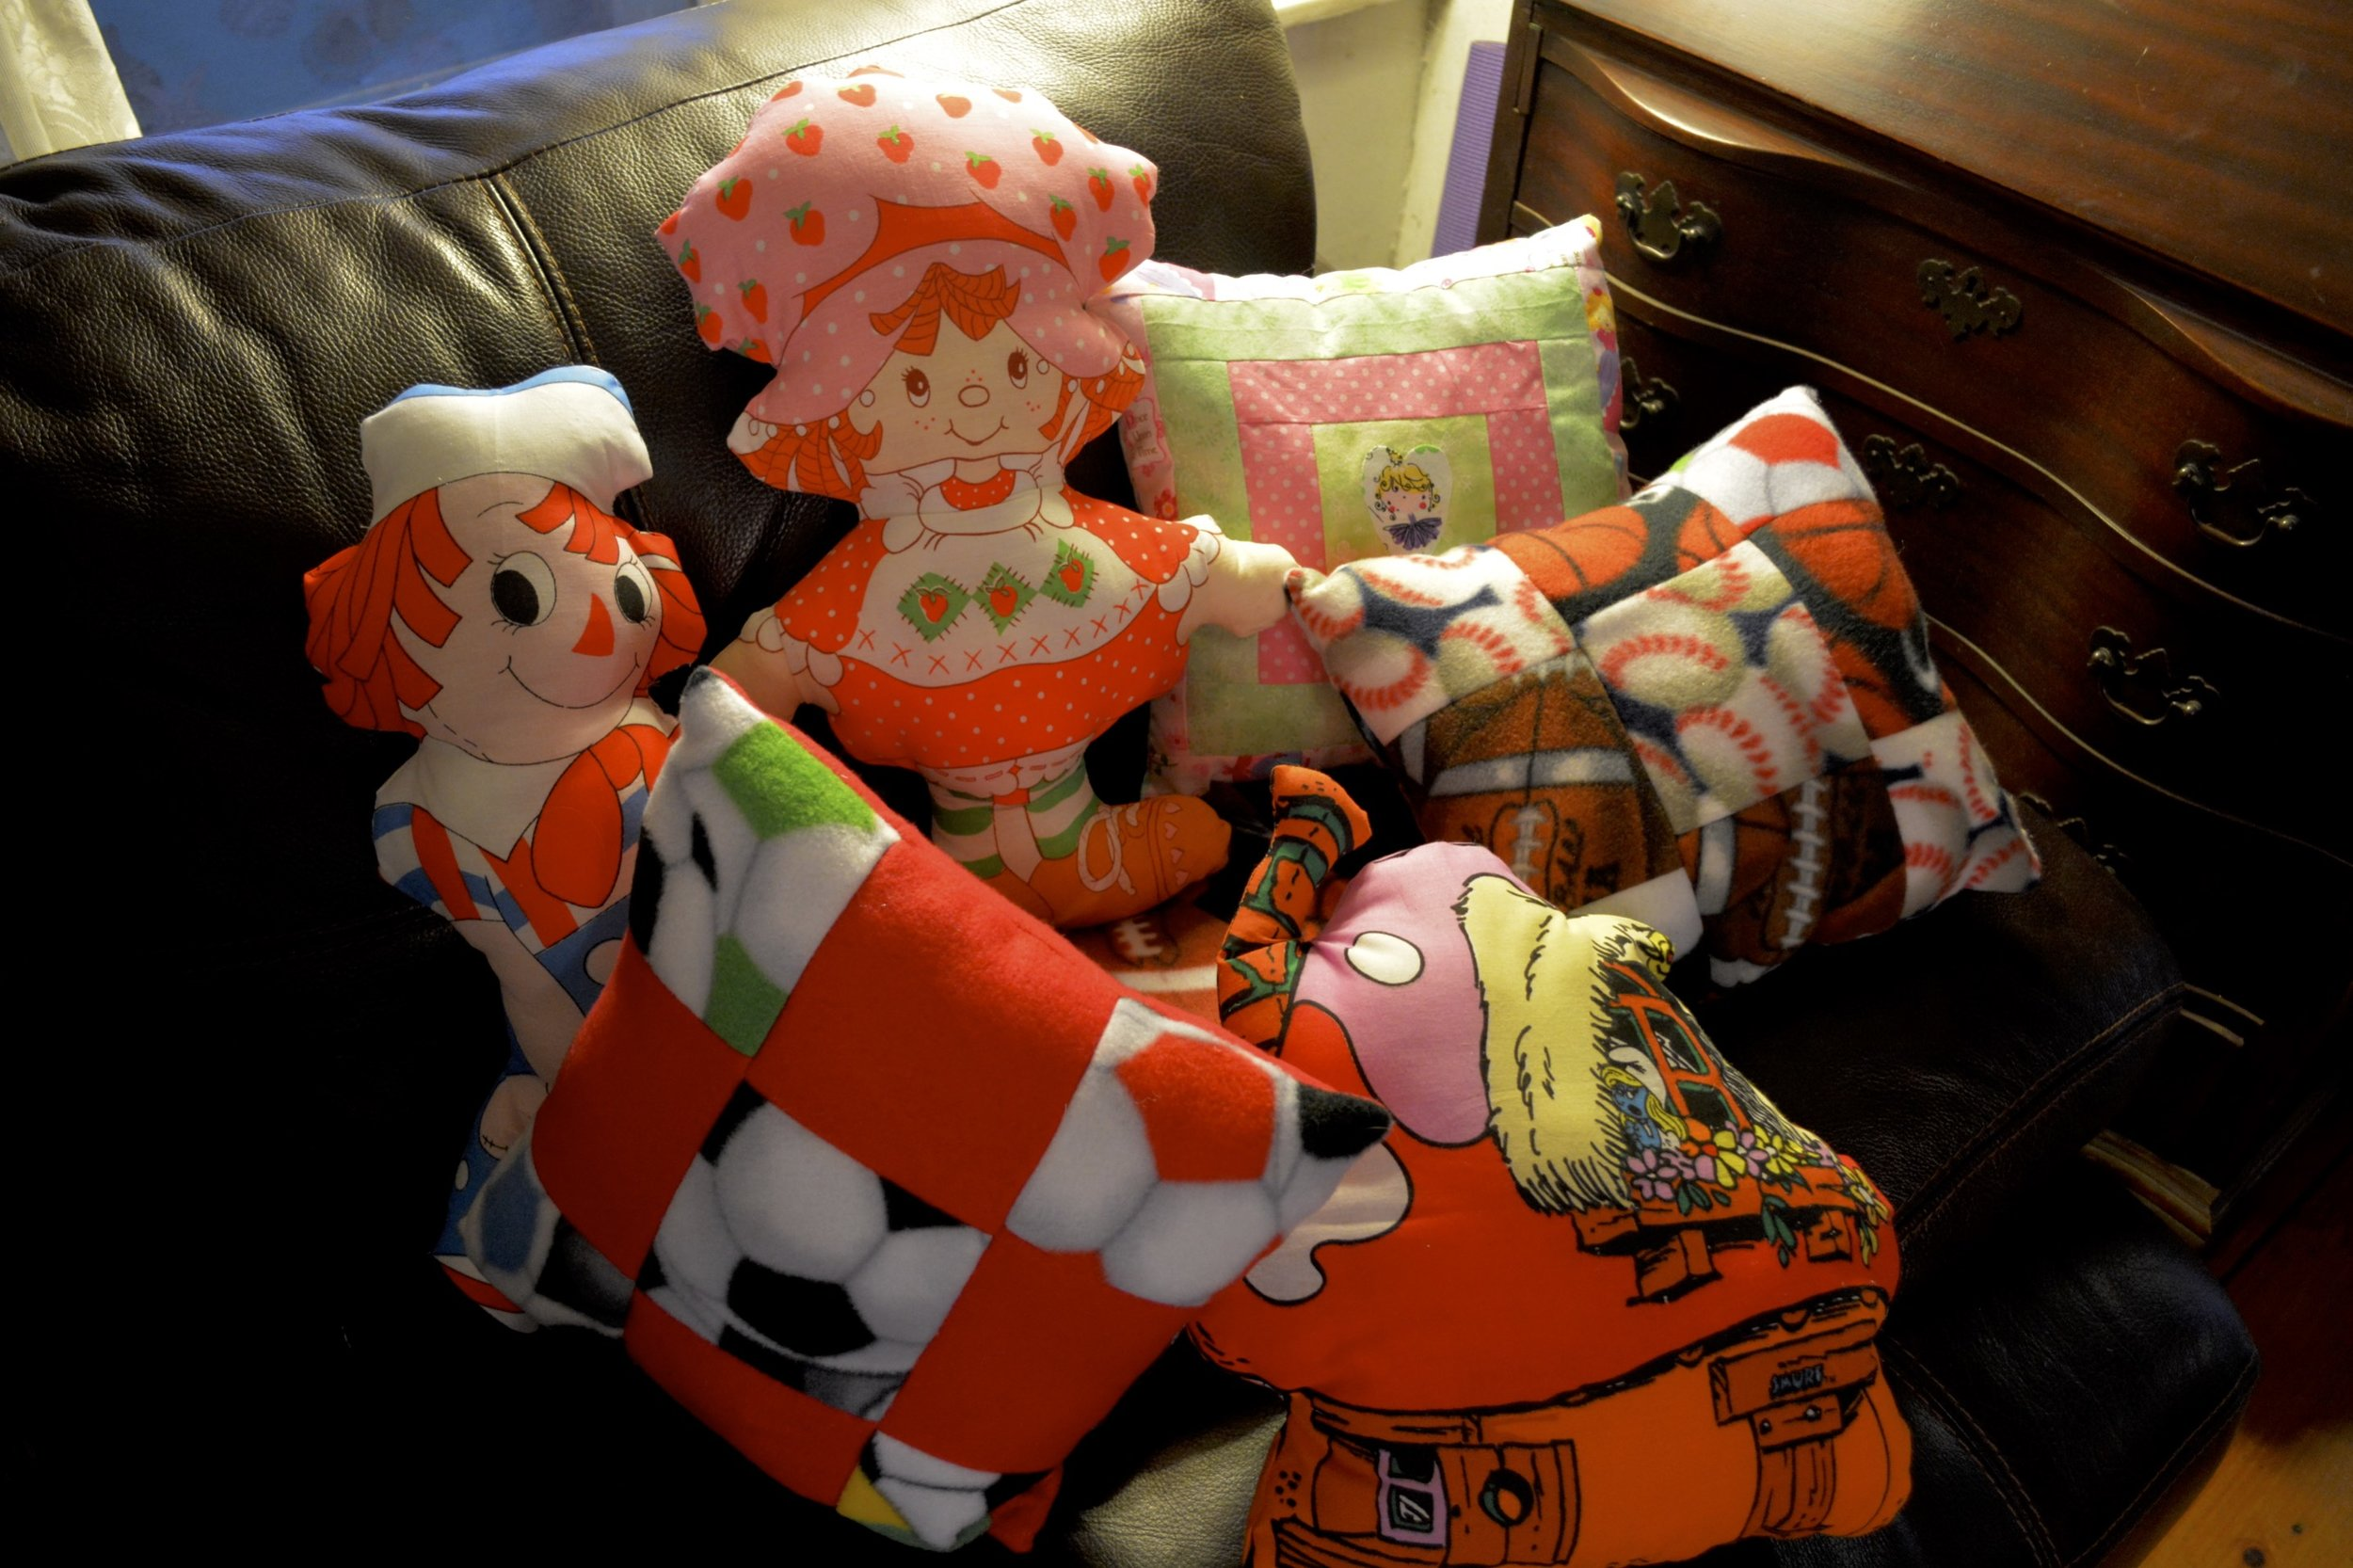 Our friend Stacy from Christ the King has made us so many beautiful pillows and blankets! Thank you so much!